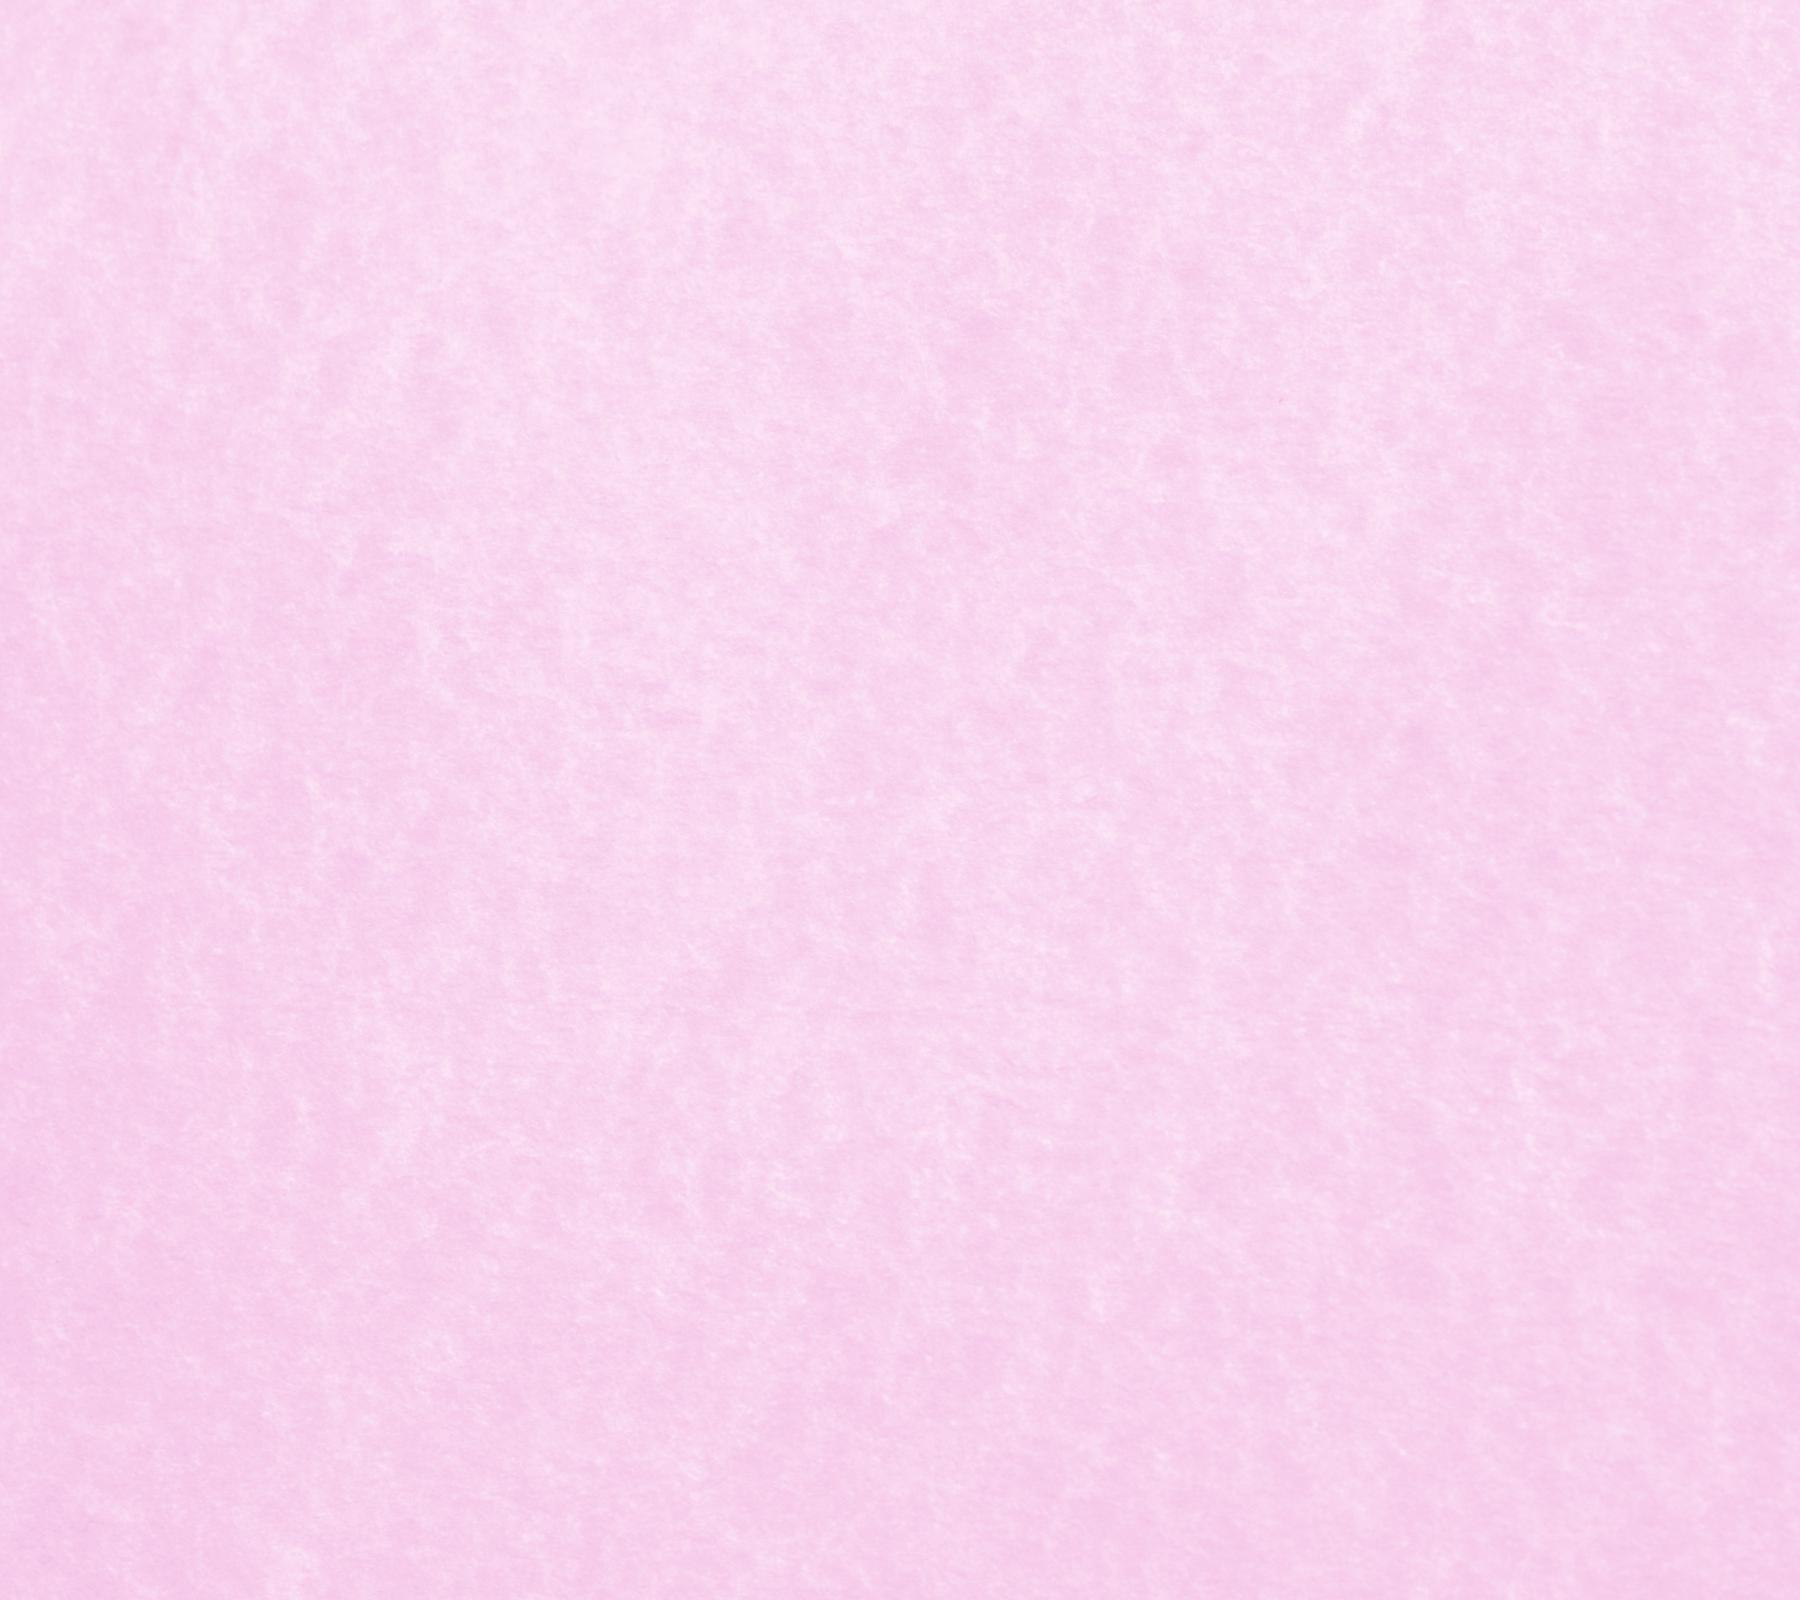 Light Pink Pattern & Pictures Becuo Clipart PPT Backgrounds